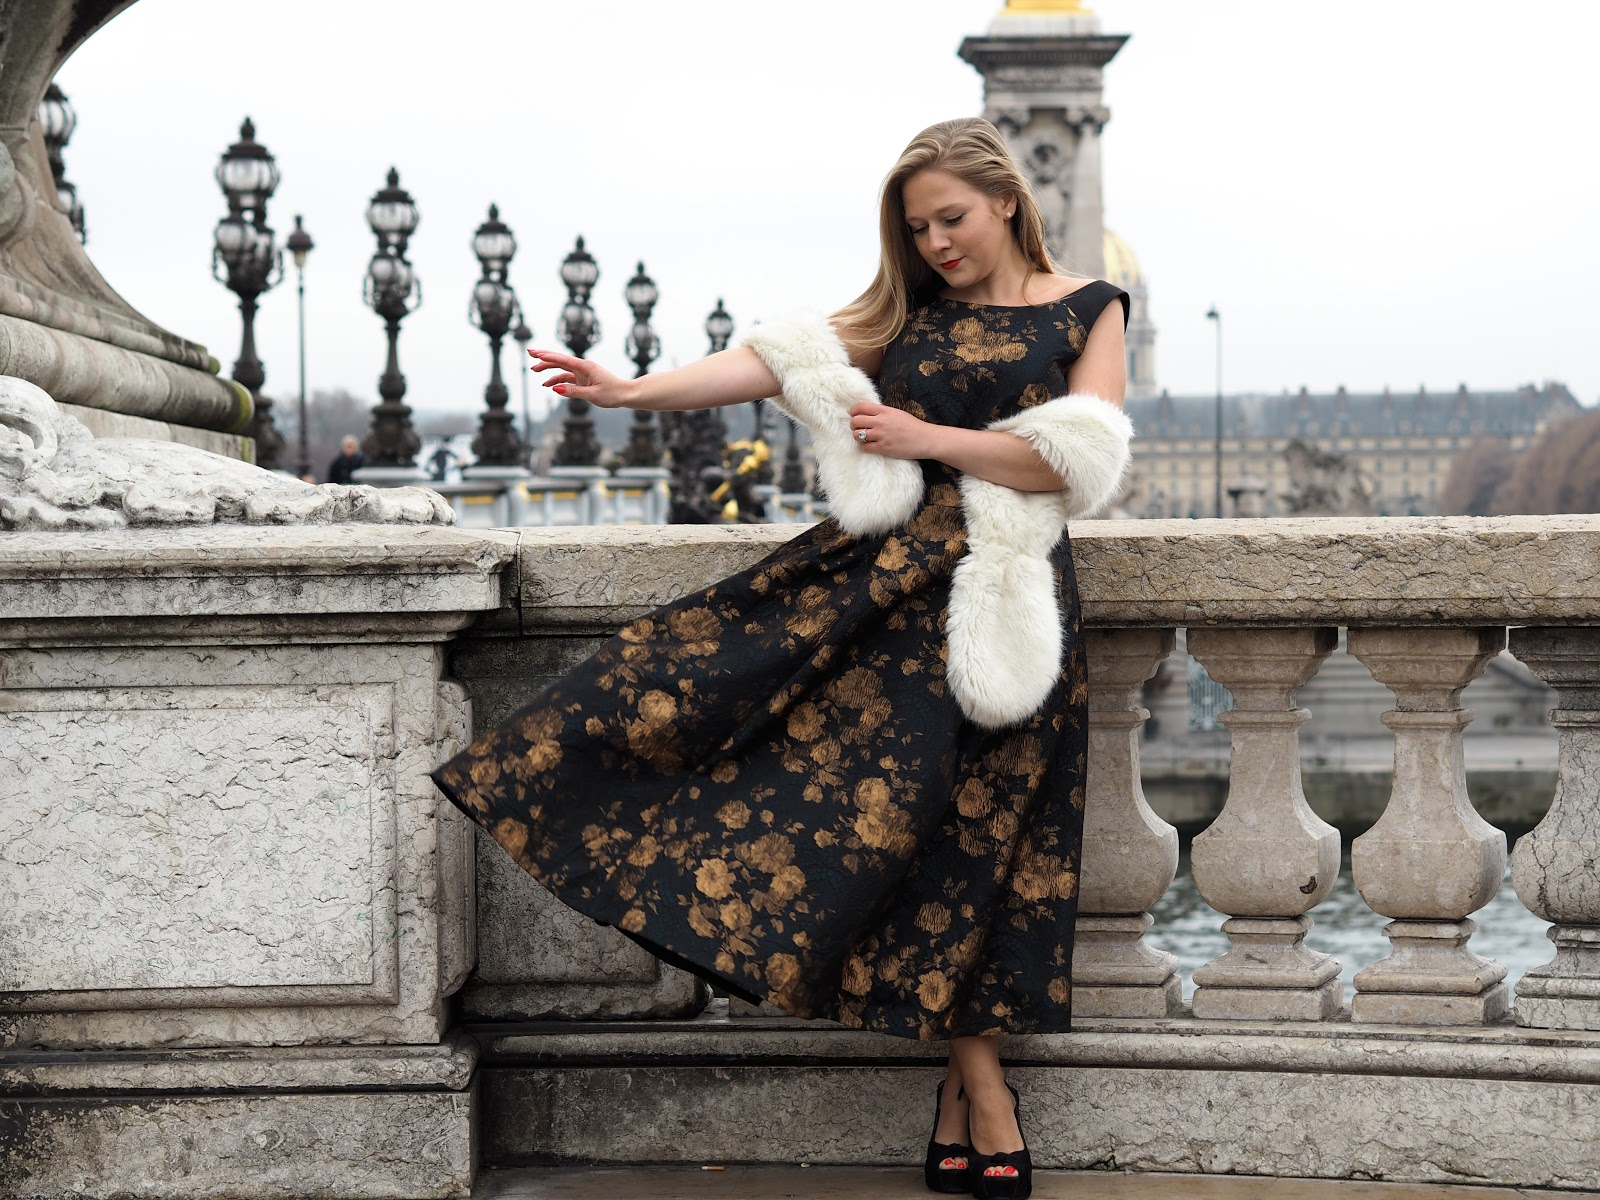 Blonde girl, Katie Matthews, KALANCHOE wearing Charlet Jacquard Dress by Ted Baker, 40's style